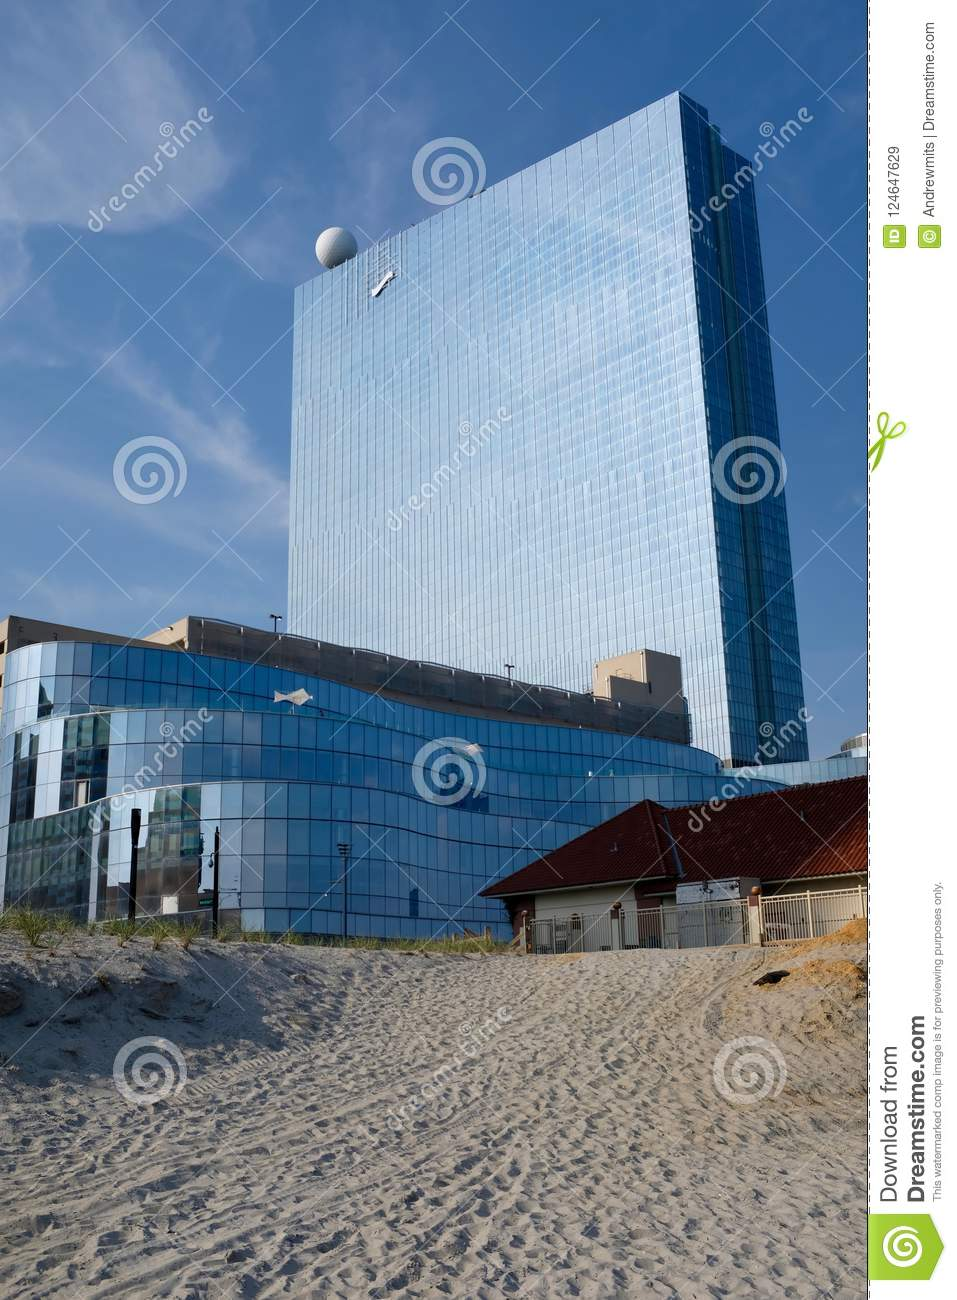 Ocean Resort Hotel And Casino Editorial Stock Image - Image of  northernmost, jersey: 124647629